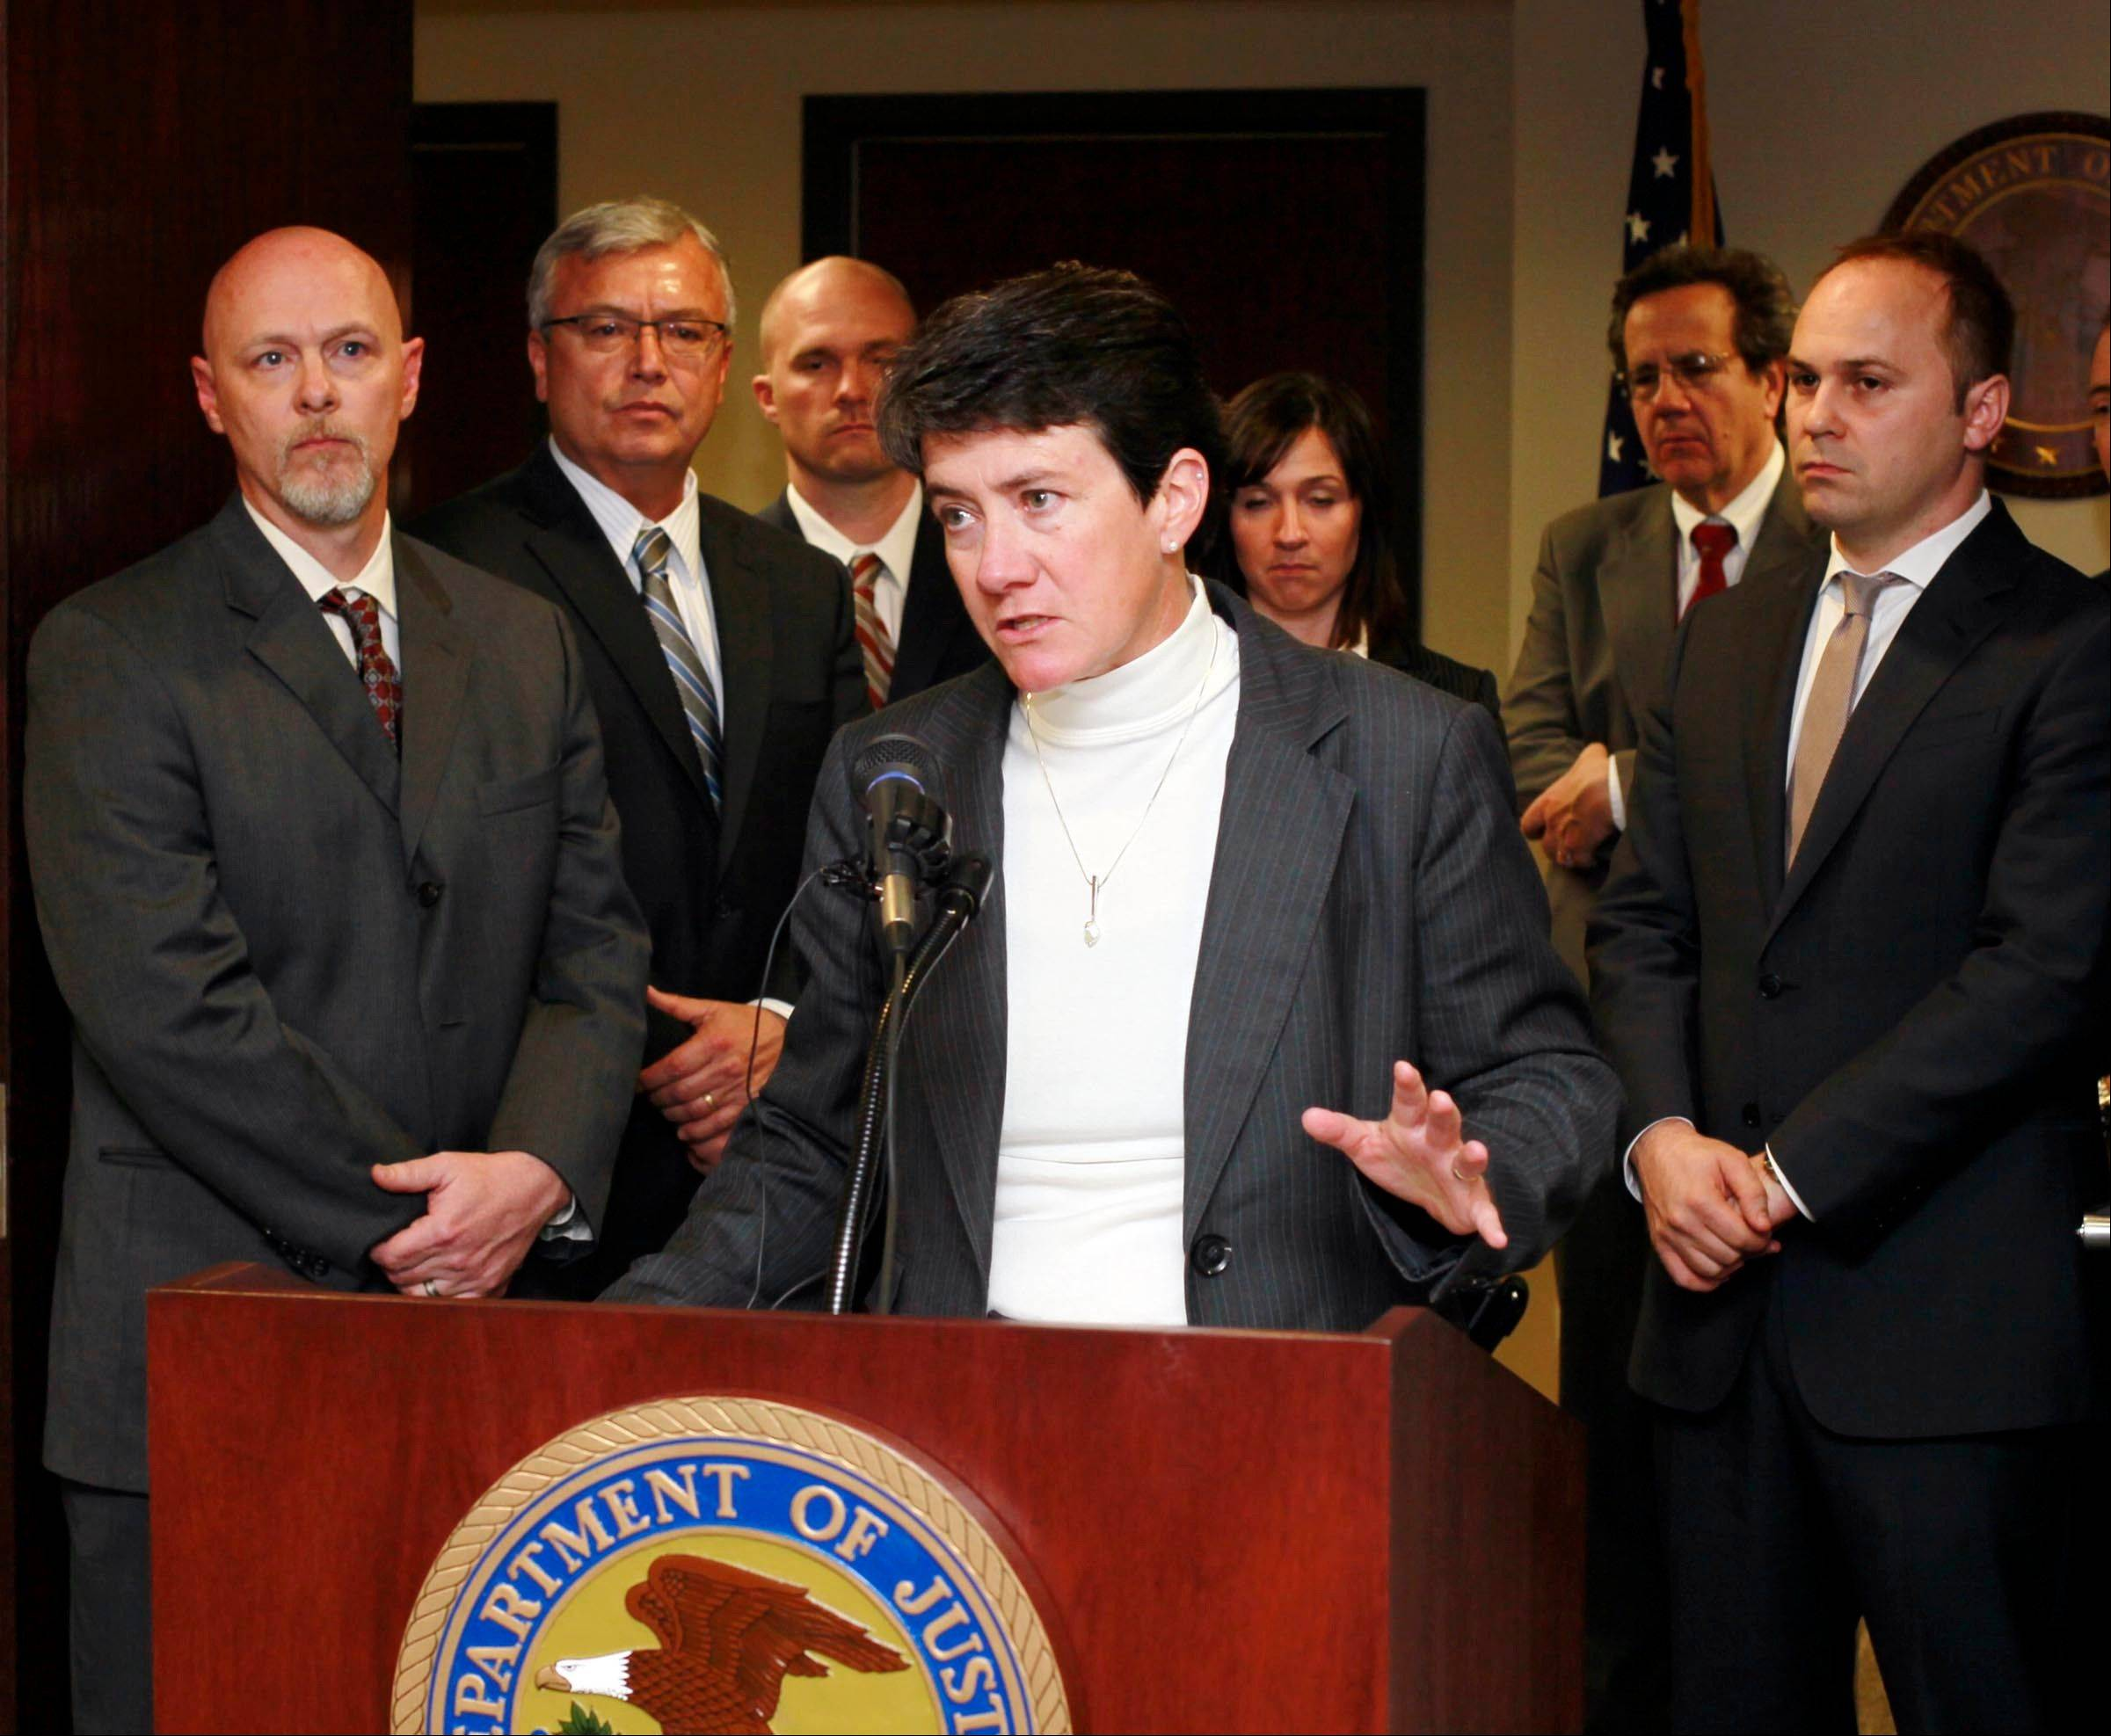 Associated Press U.S. Attorney Wendy J. Olsen announces the indictment by a federal grand jury of four DBSI principal businessmen for conspiracy to commit securities fraud among other charges in a news conference Wednesday in Boise, Idaho.